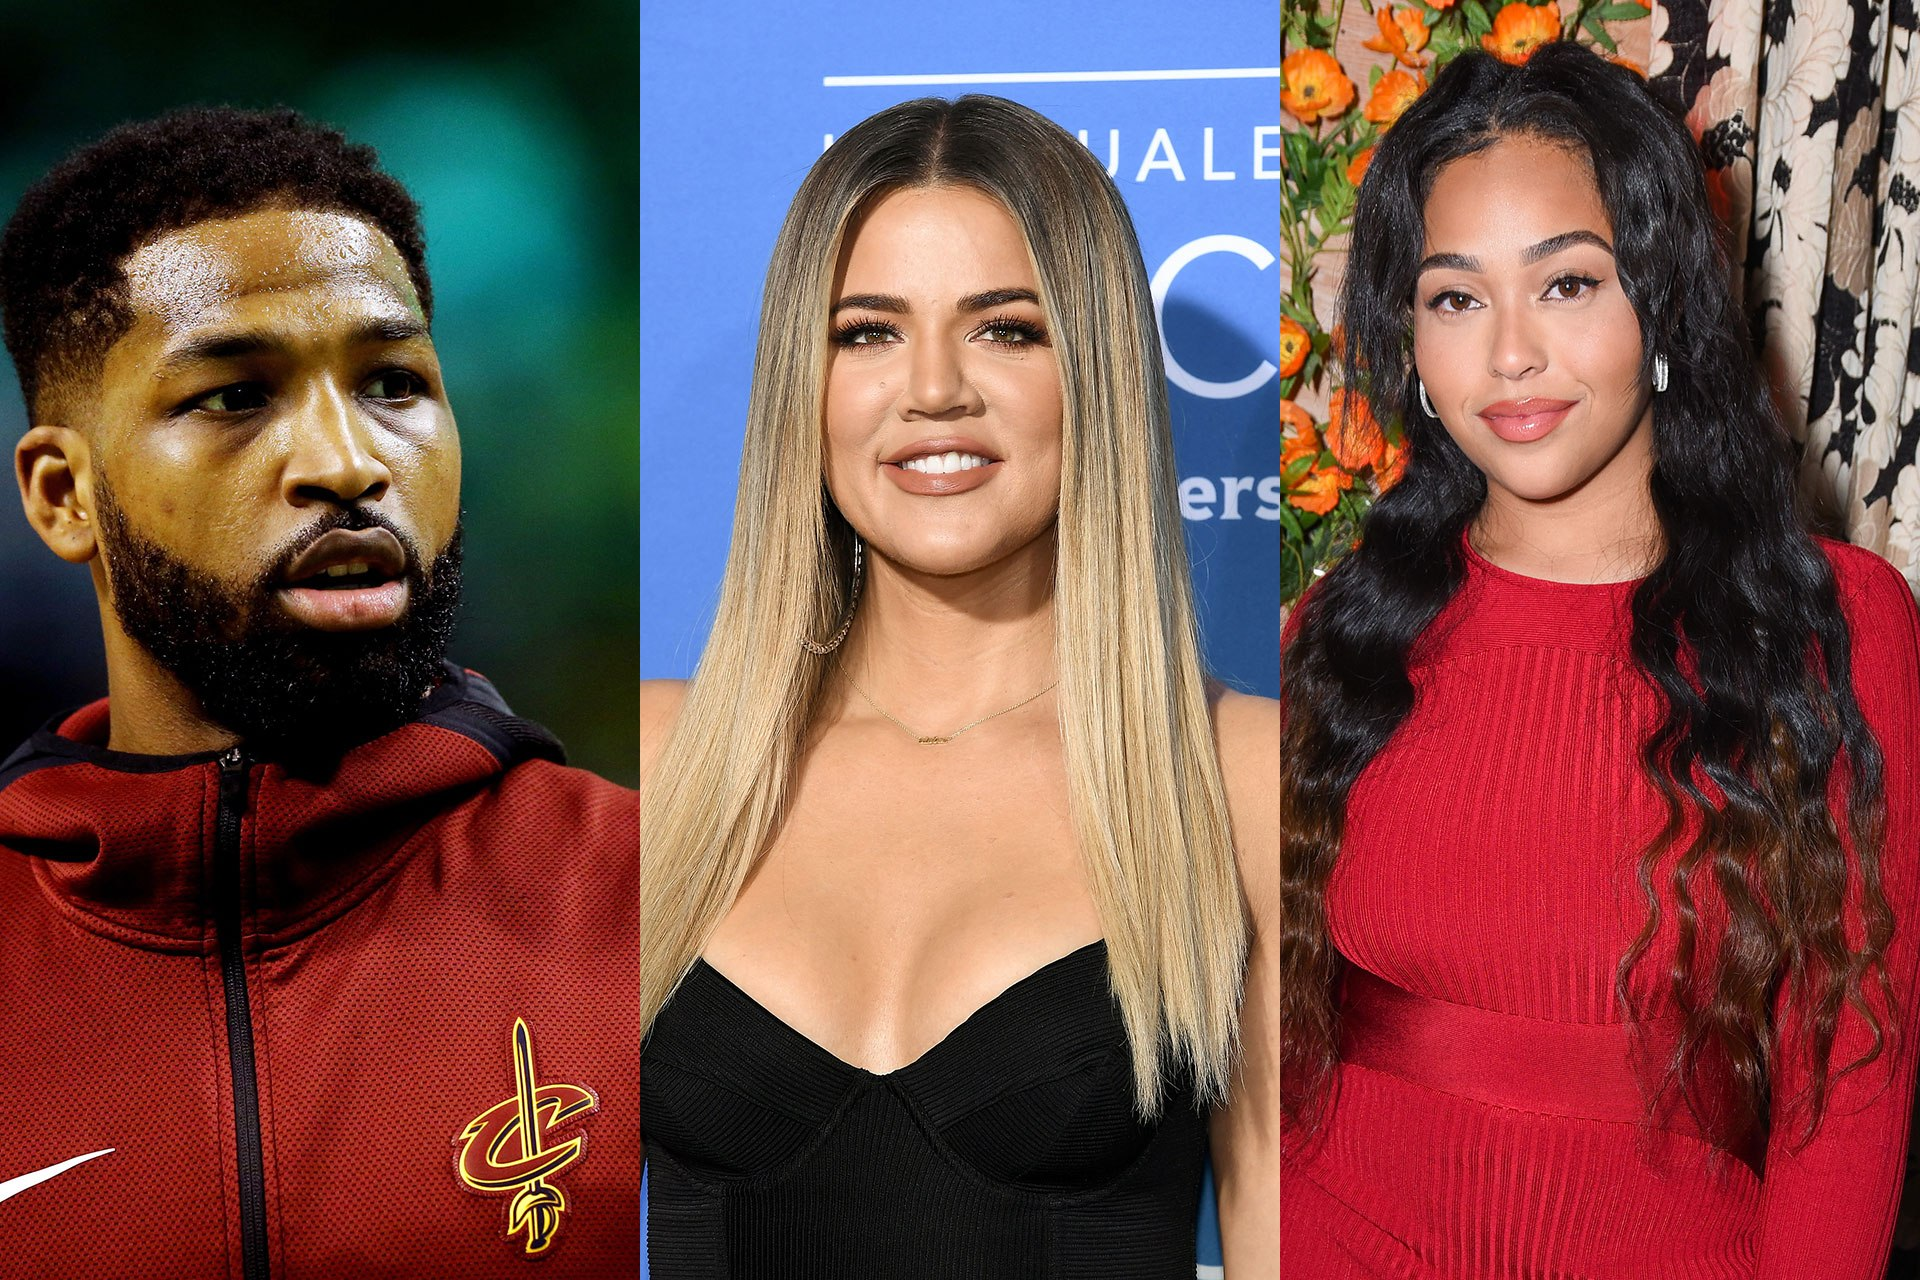 Tristan Thompson reportedly cheated on Khloé Kardashian with Kylie Jenner's best friend Jordyn Woods